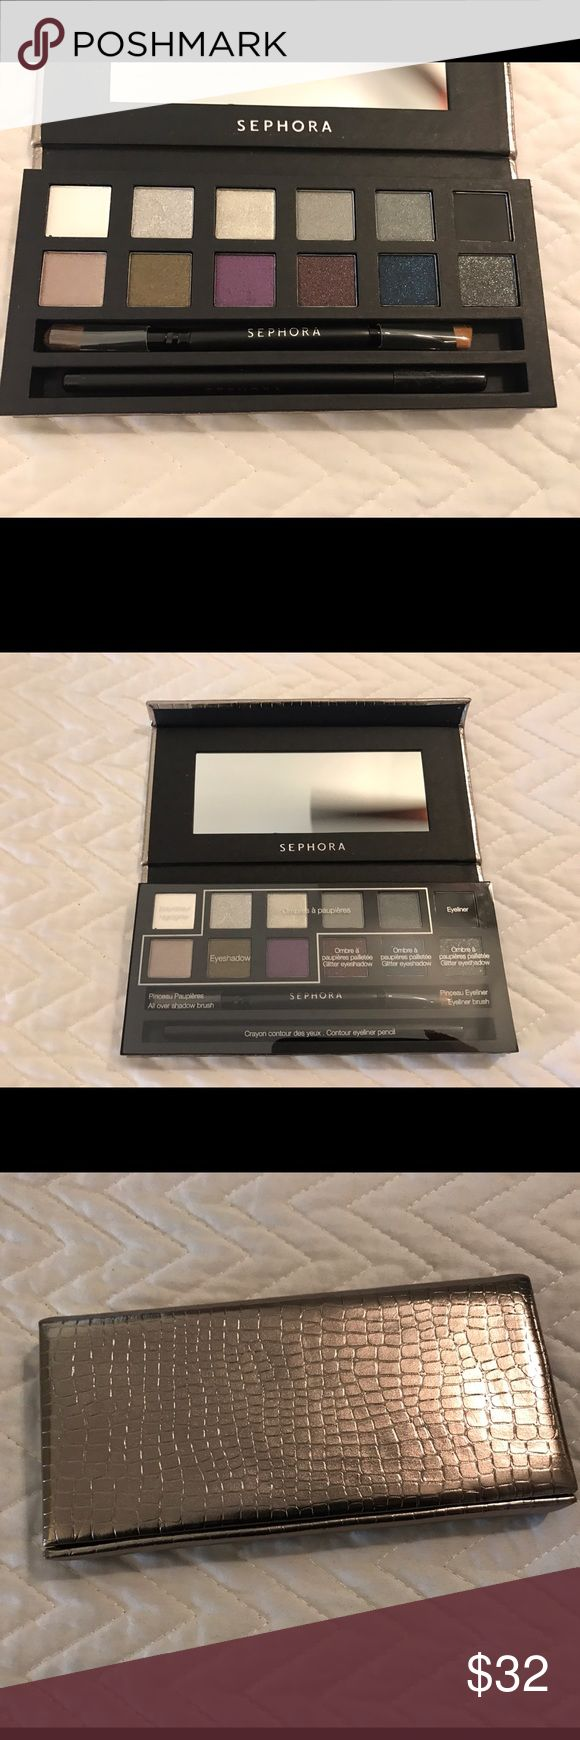 Sephora eyeshadows palette 12 colors New without the box